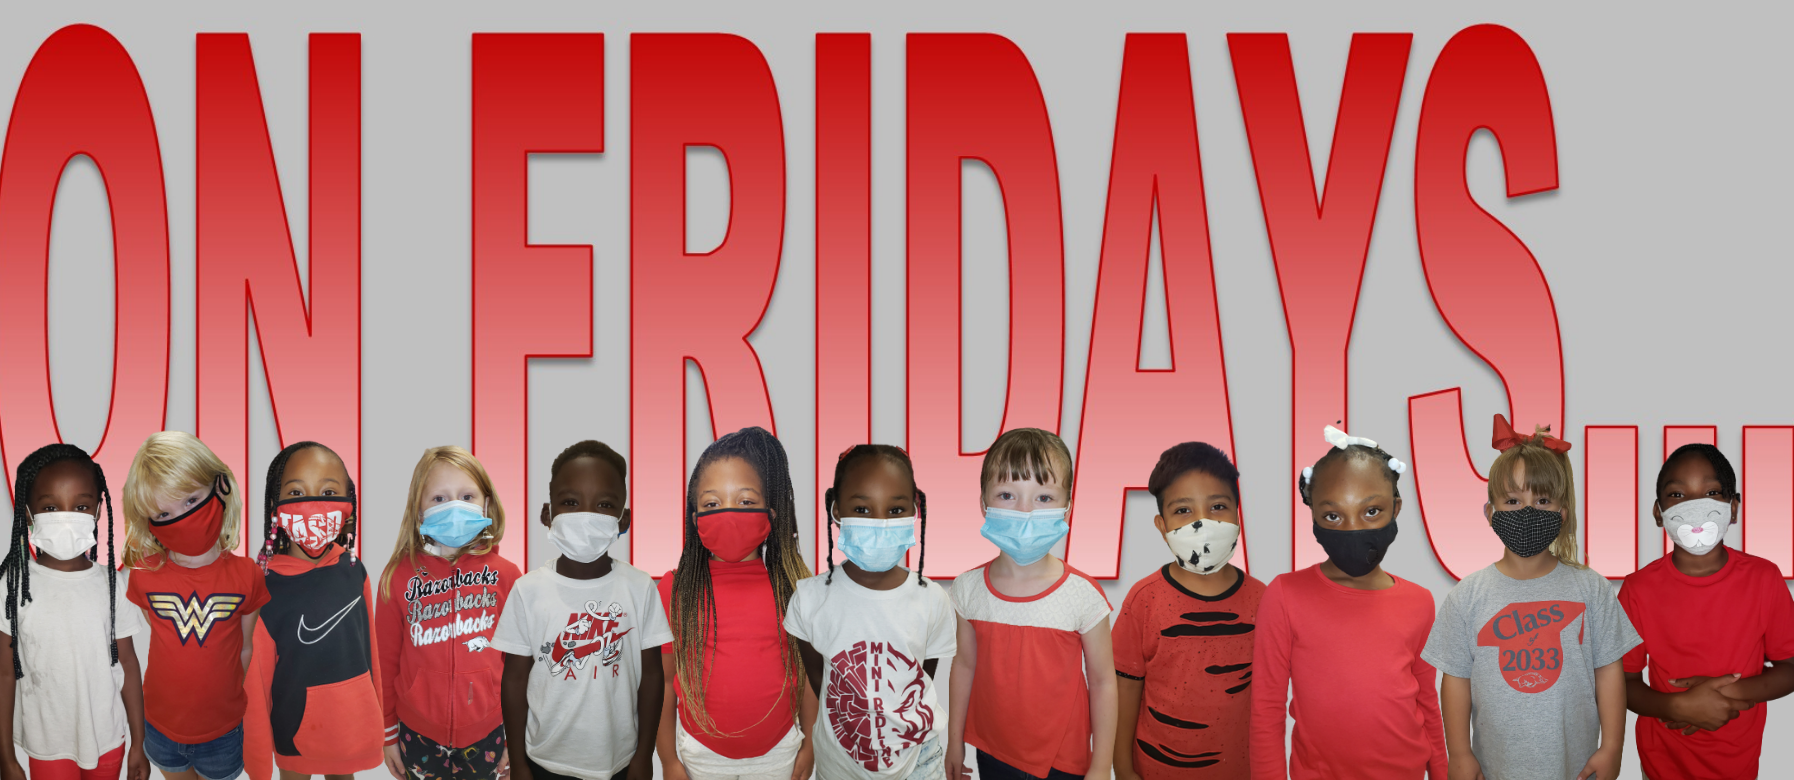 ON FRIDAYS... WE WEAR RED!